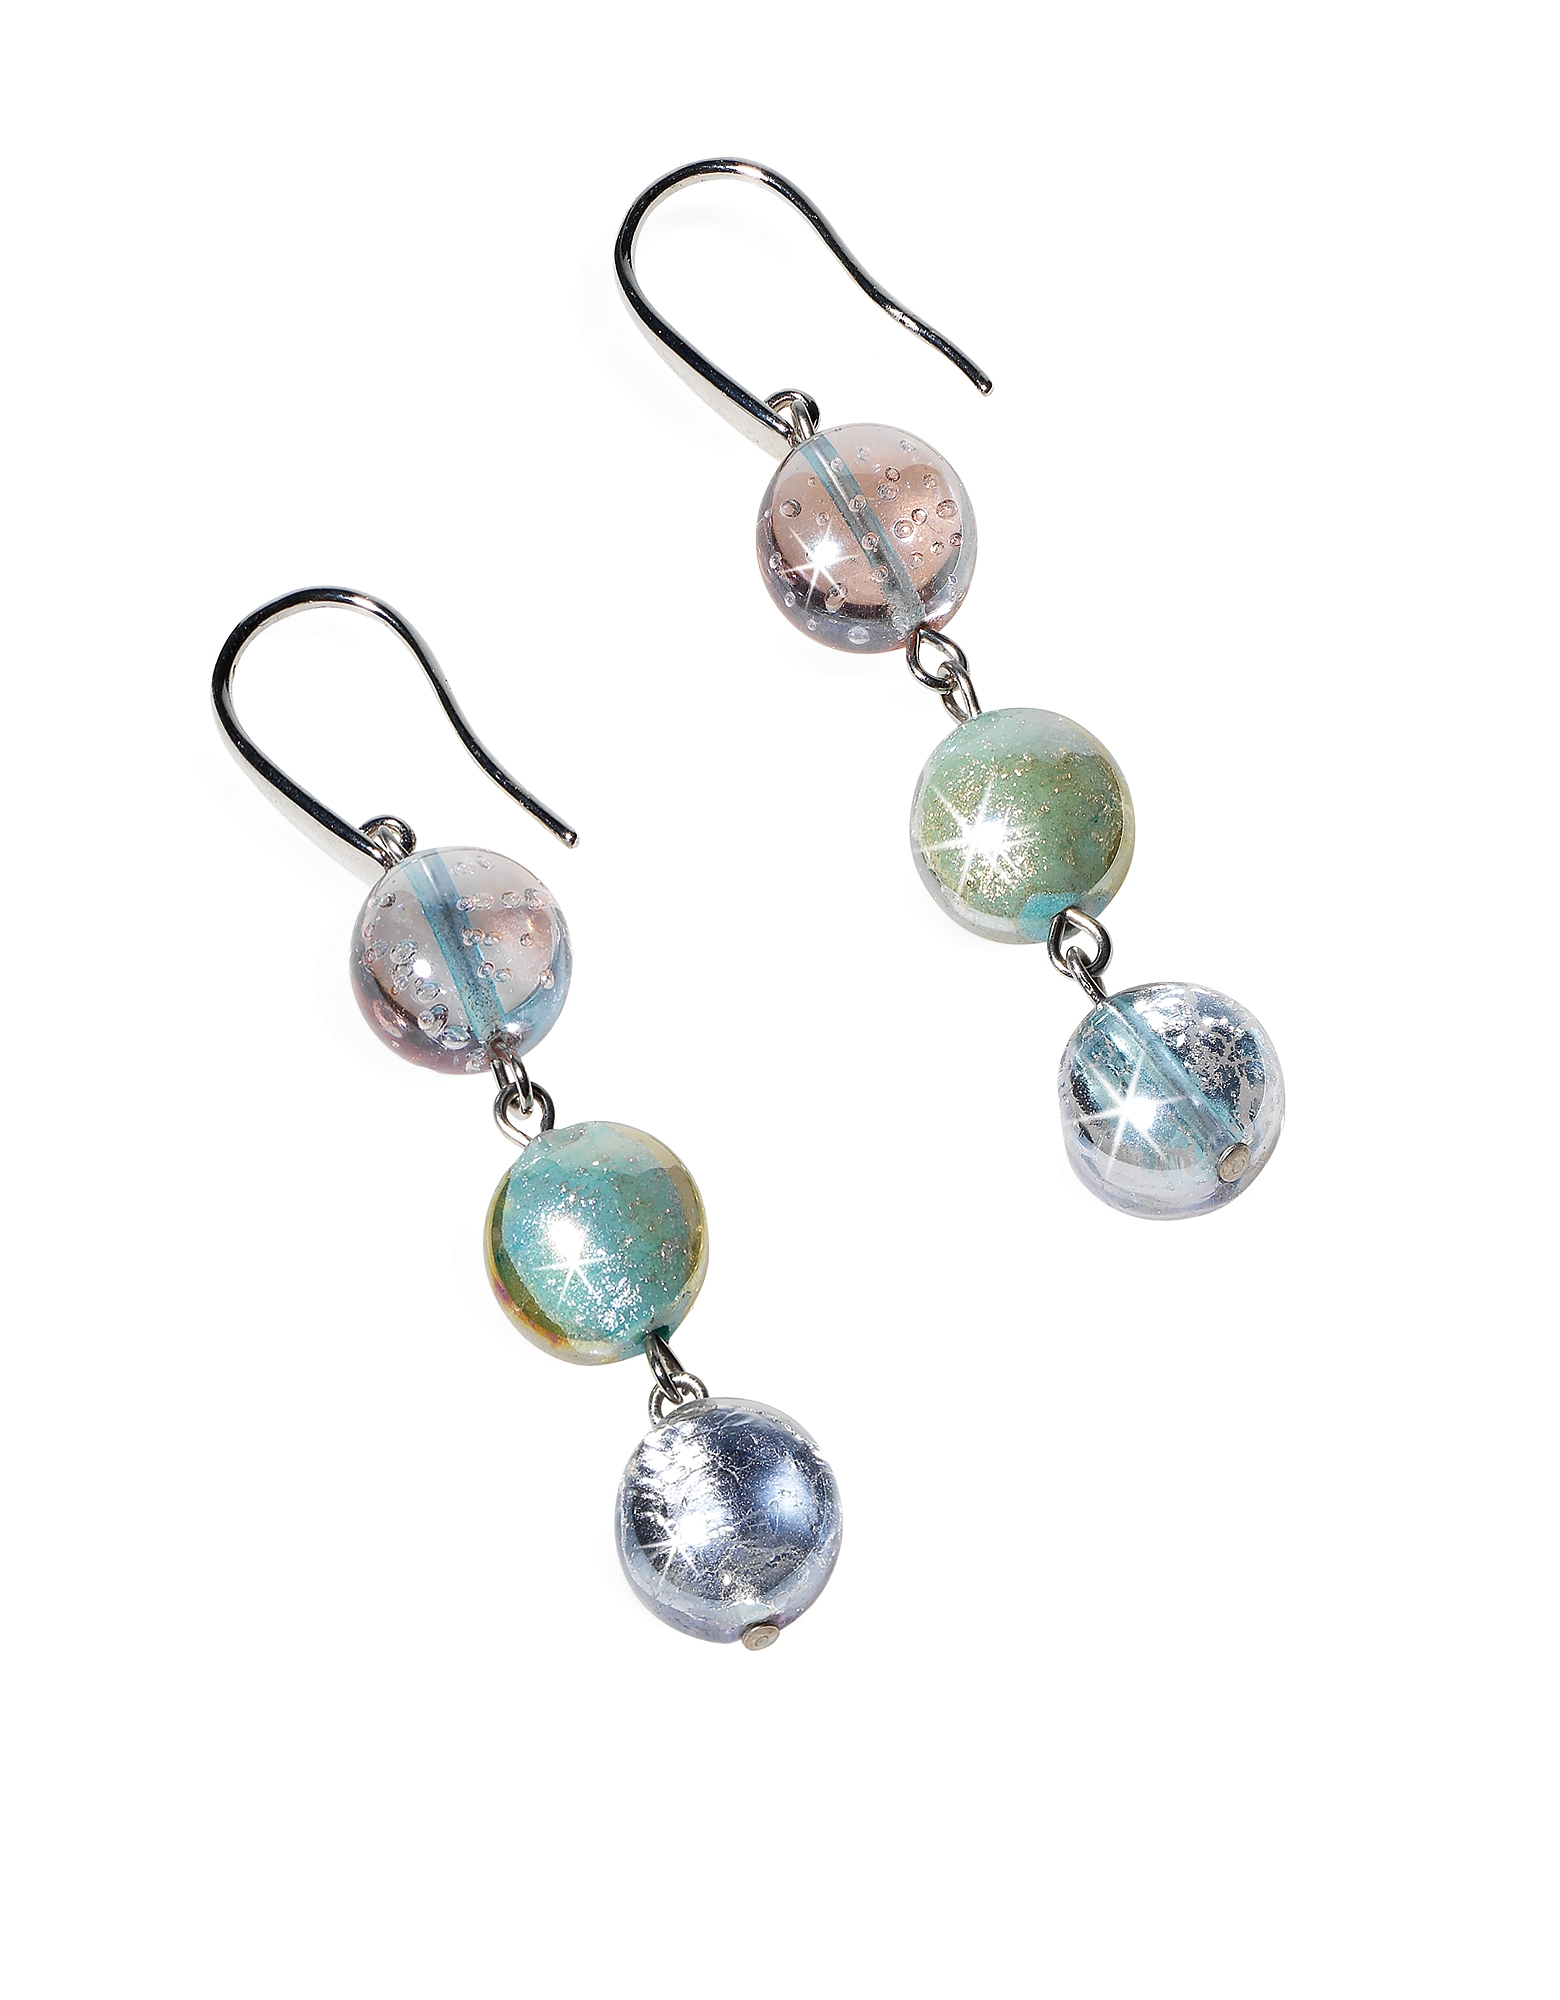 Redentore 1 - Pastel Pink and Green Murano Glass & Silver Leaf Dangling Earrings от Forzieri.com INT